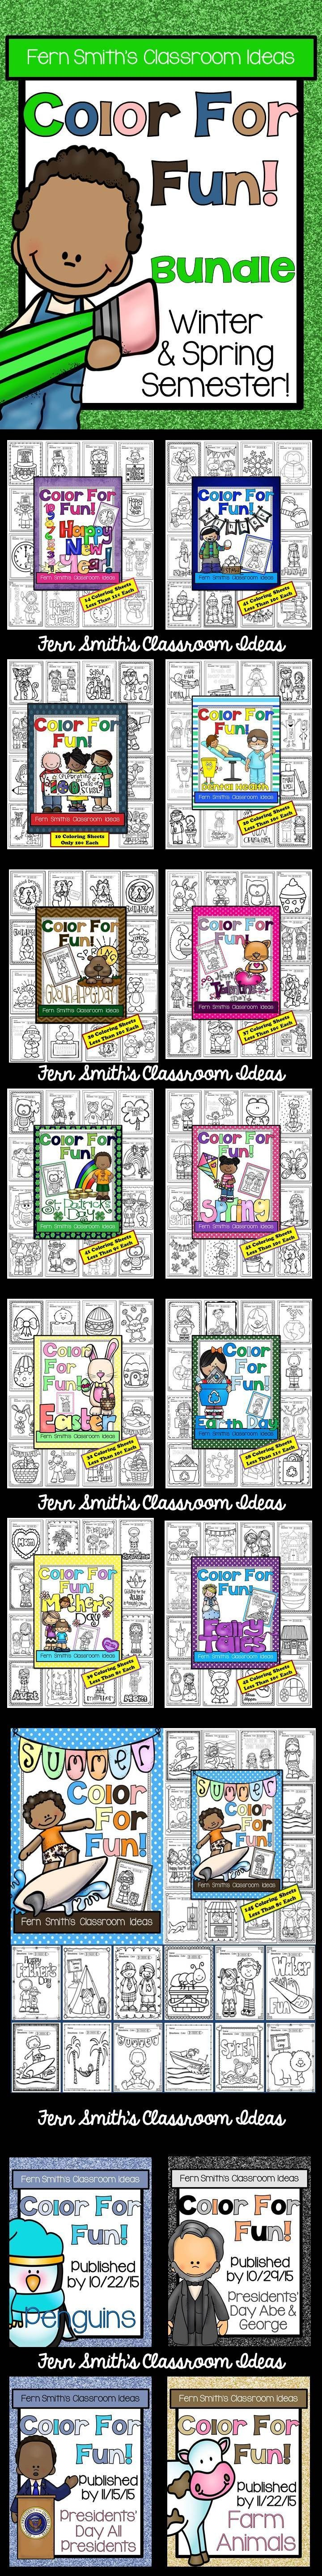 Color for Fun Second Semester Growing Bundle for July to December. #Free Fall Coloring Page in the Preview Download. Summer, Spring, Winter, New Year's Day, St. Valentine's Day, Dental Health, Groundhog Day, 100th Day of School, Fairy Tales, St. Patrick's Day, Easter, Mother's Day, Earth Day. #Bundle #TPT $Paid